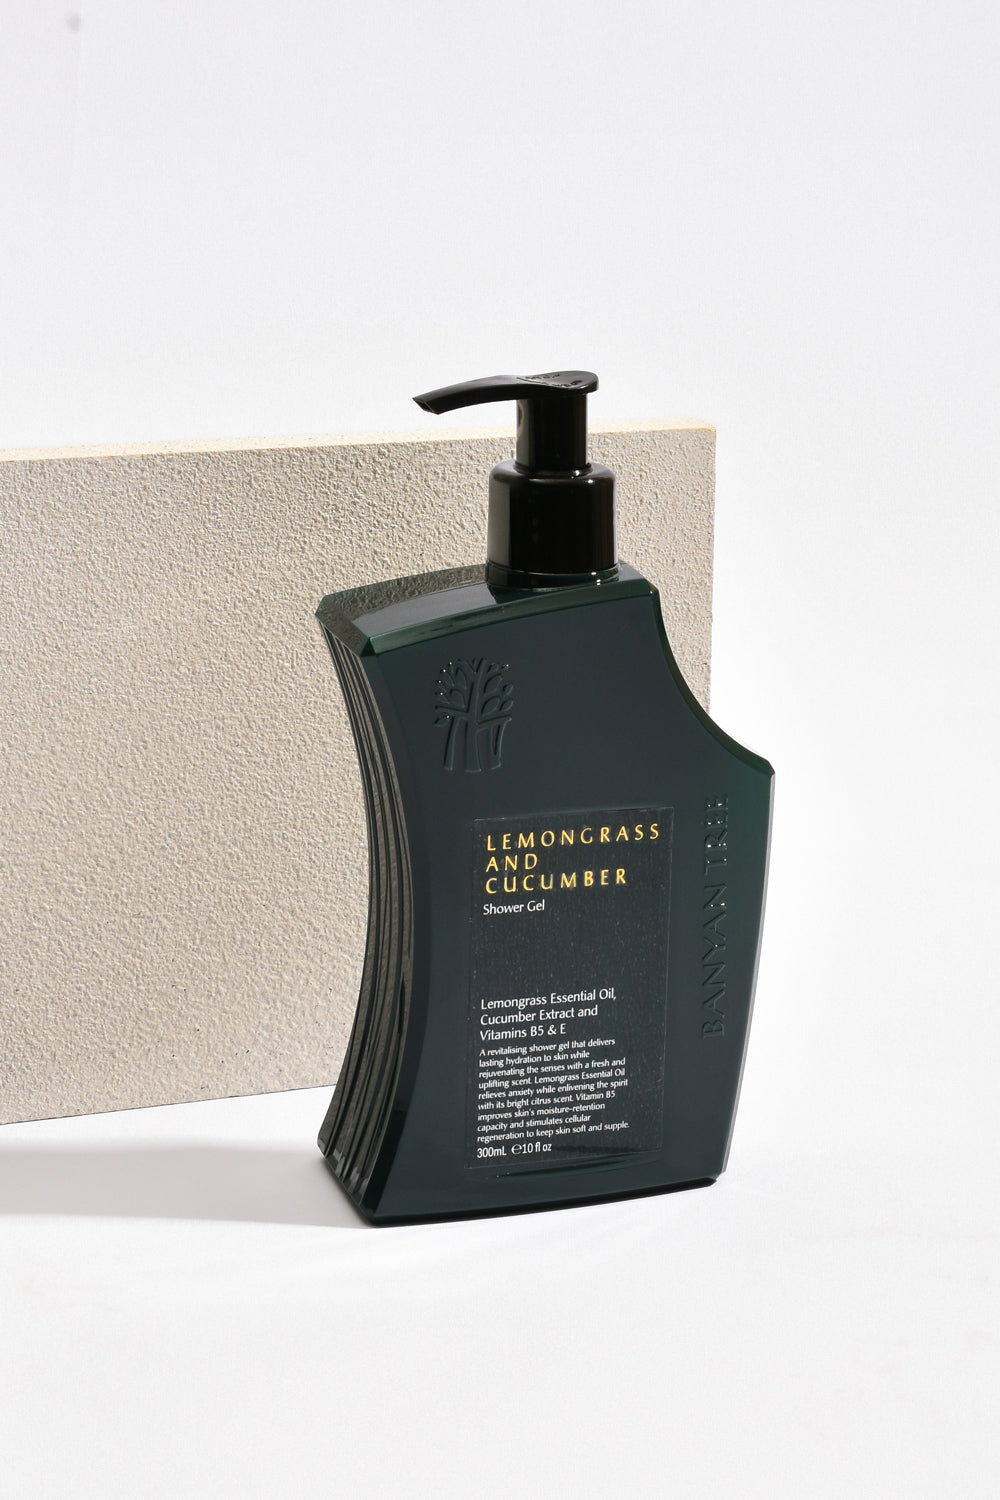 Lemongrass and Cucumber Shower Gel - Banyan Tree Gallery